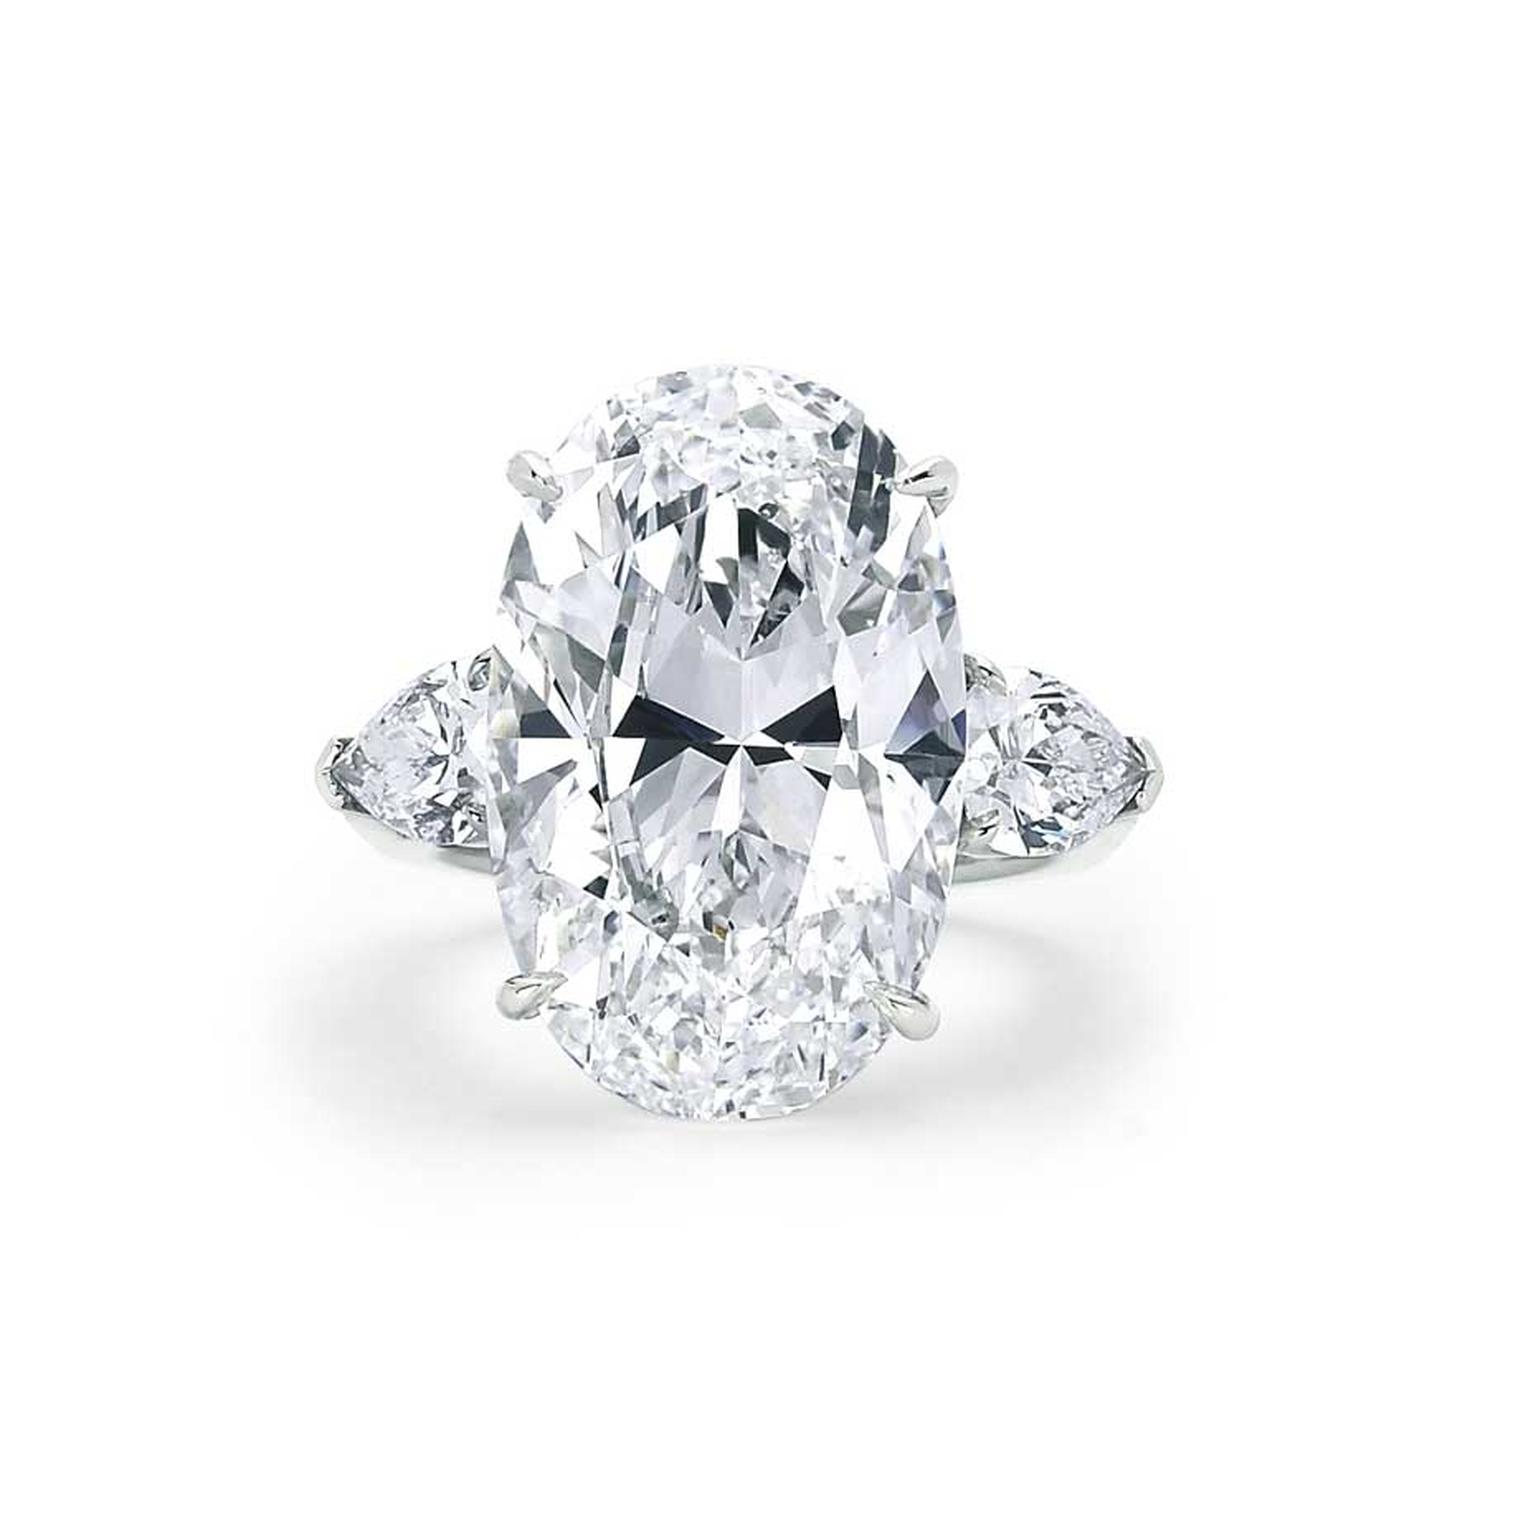 American actress Kate Hudson also wore this Forevermark diamond ring, which features a 14.58ct oval Forevermark diamond with pear diamonds set in platinum.